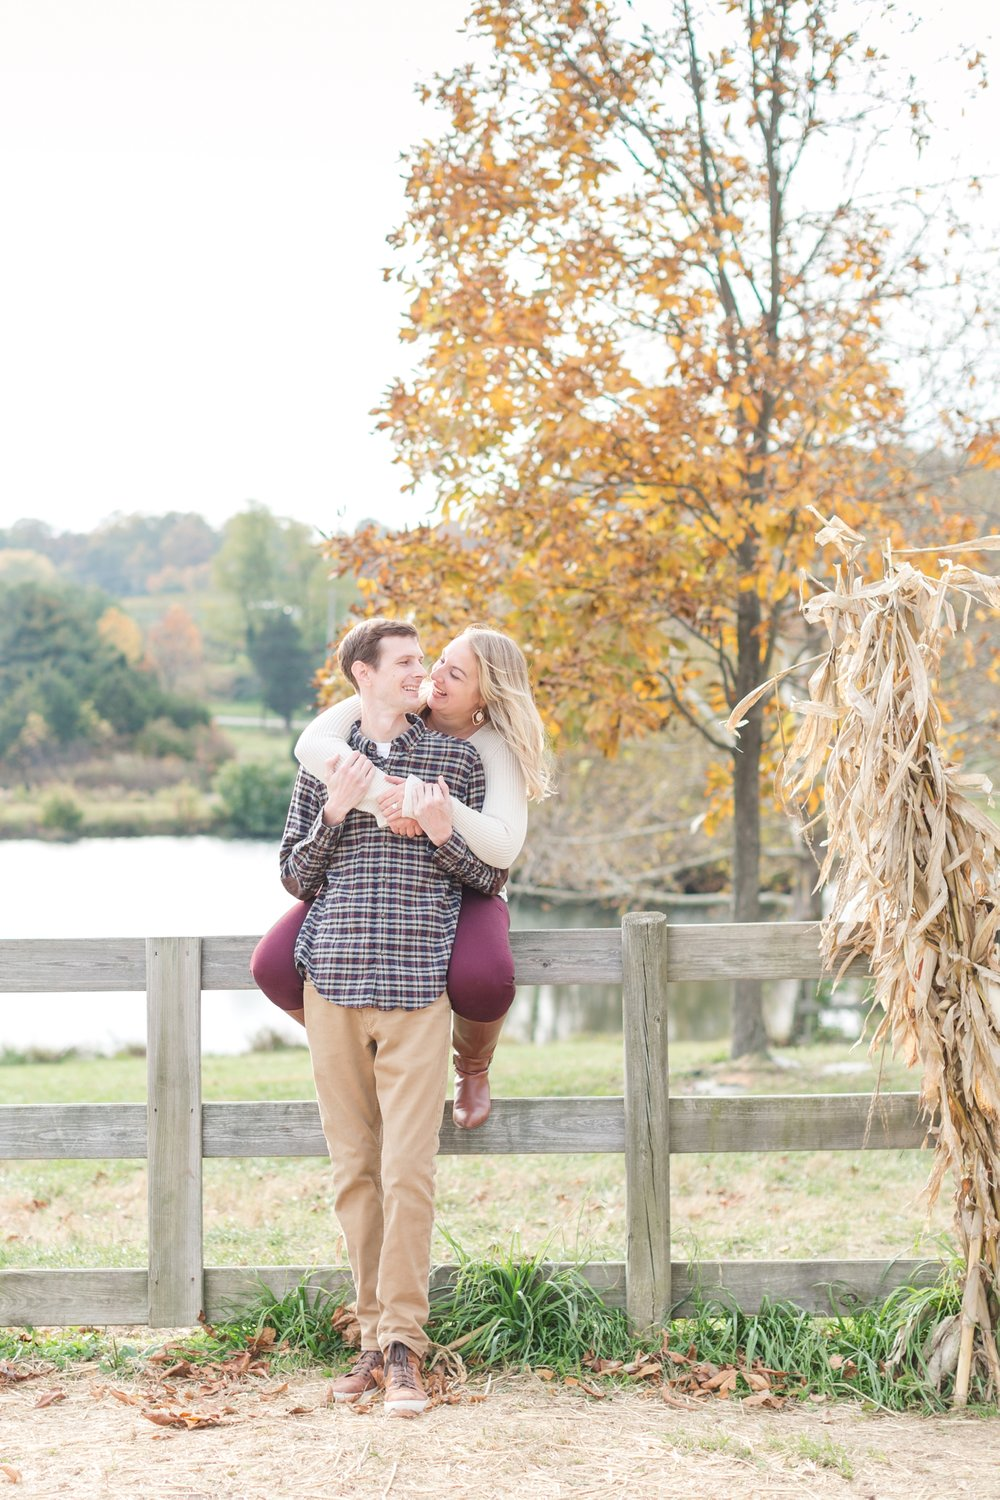 Courtney LaSalle & Taylor Black Engagement-147_larriland-farm-maryland-engagement-photography-anna-grace-photography-photo.jpg